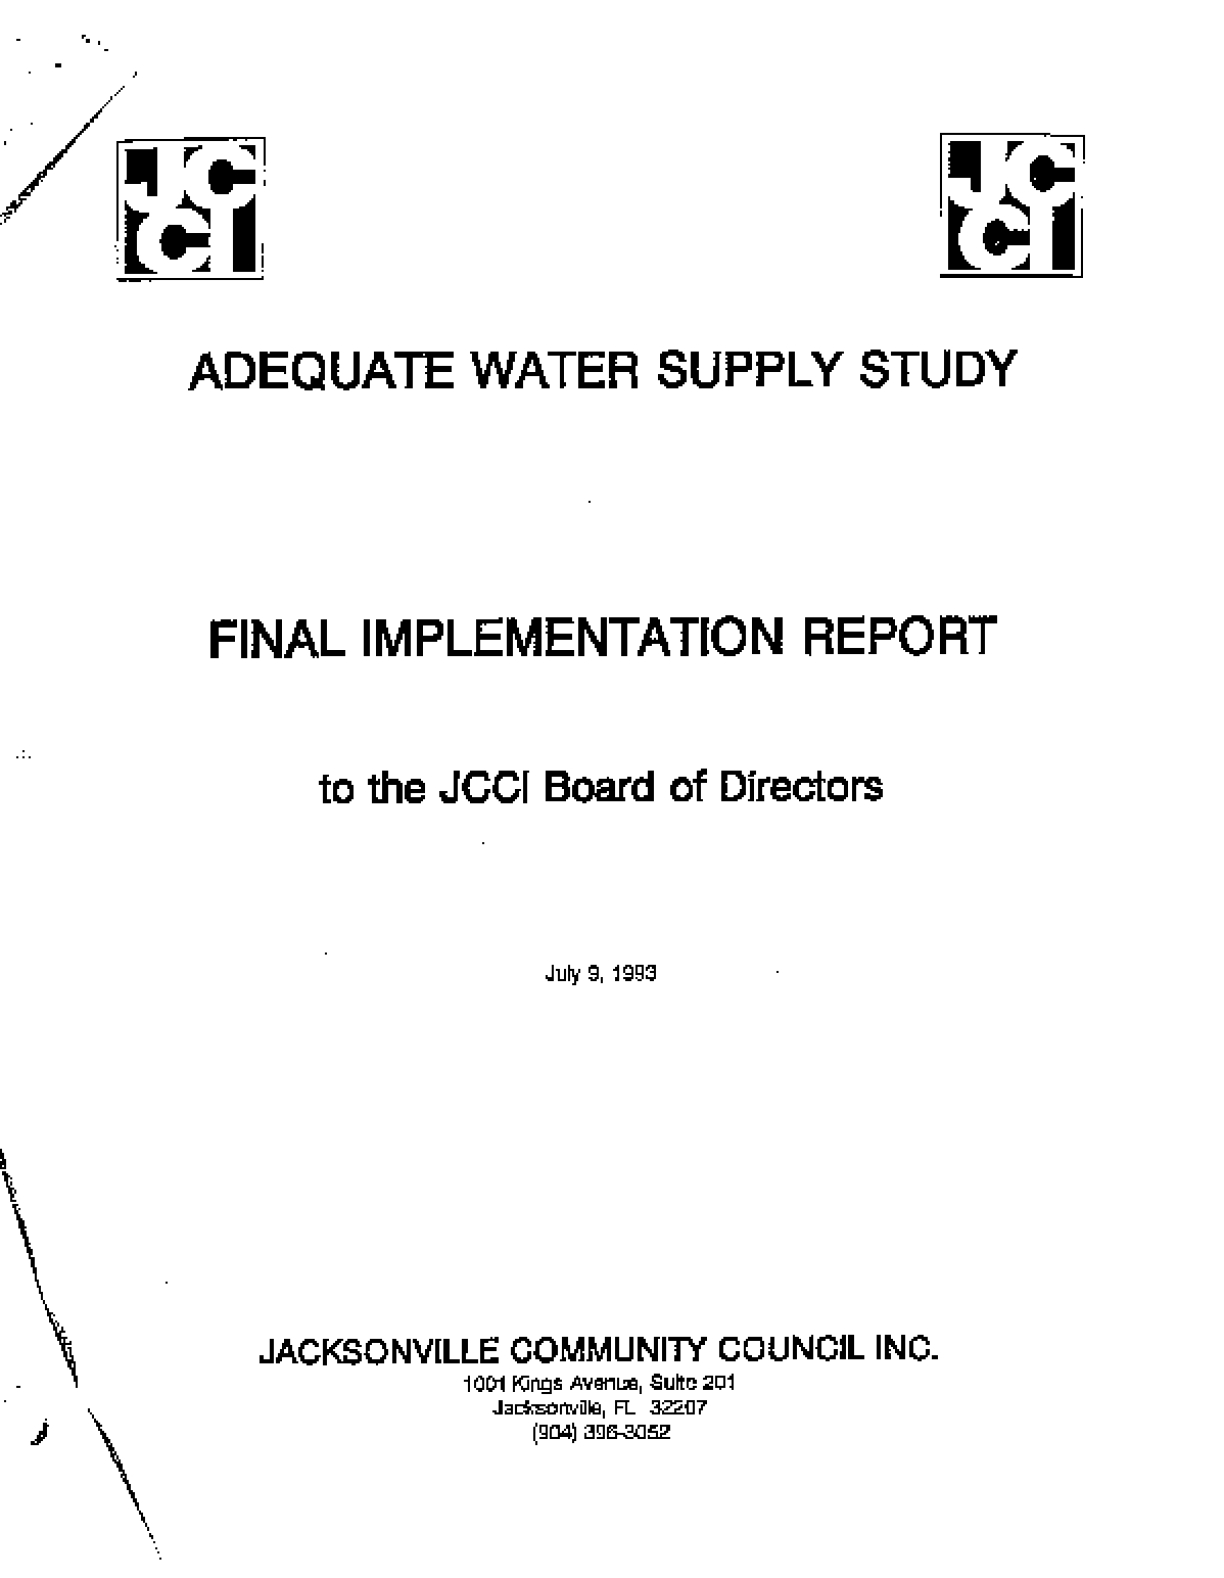 Adequate Water Supply Study: Final Implementaton Report to the JCCI Board of Directors